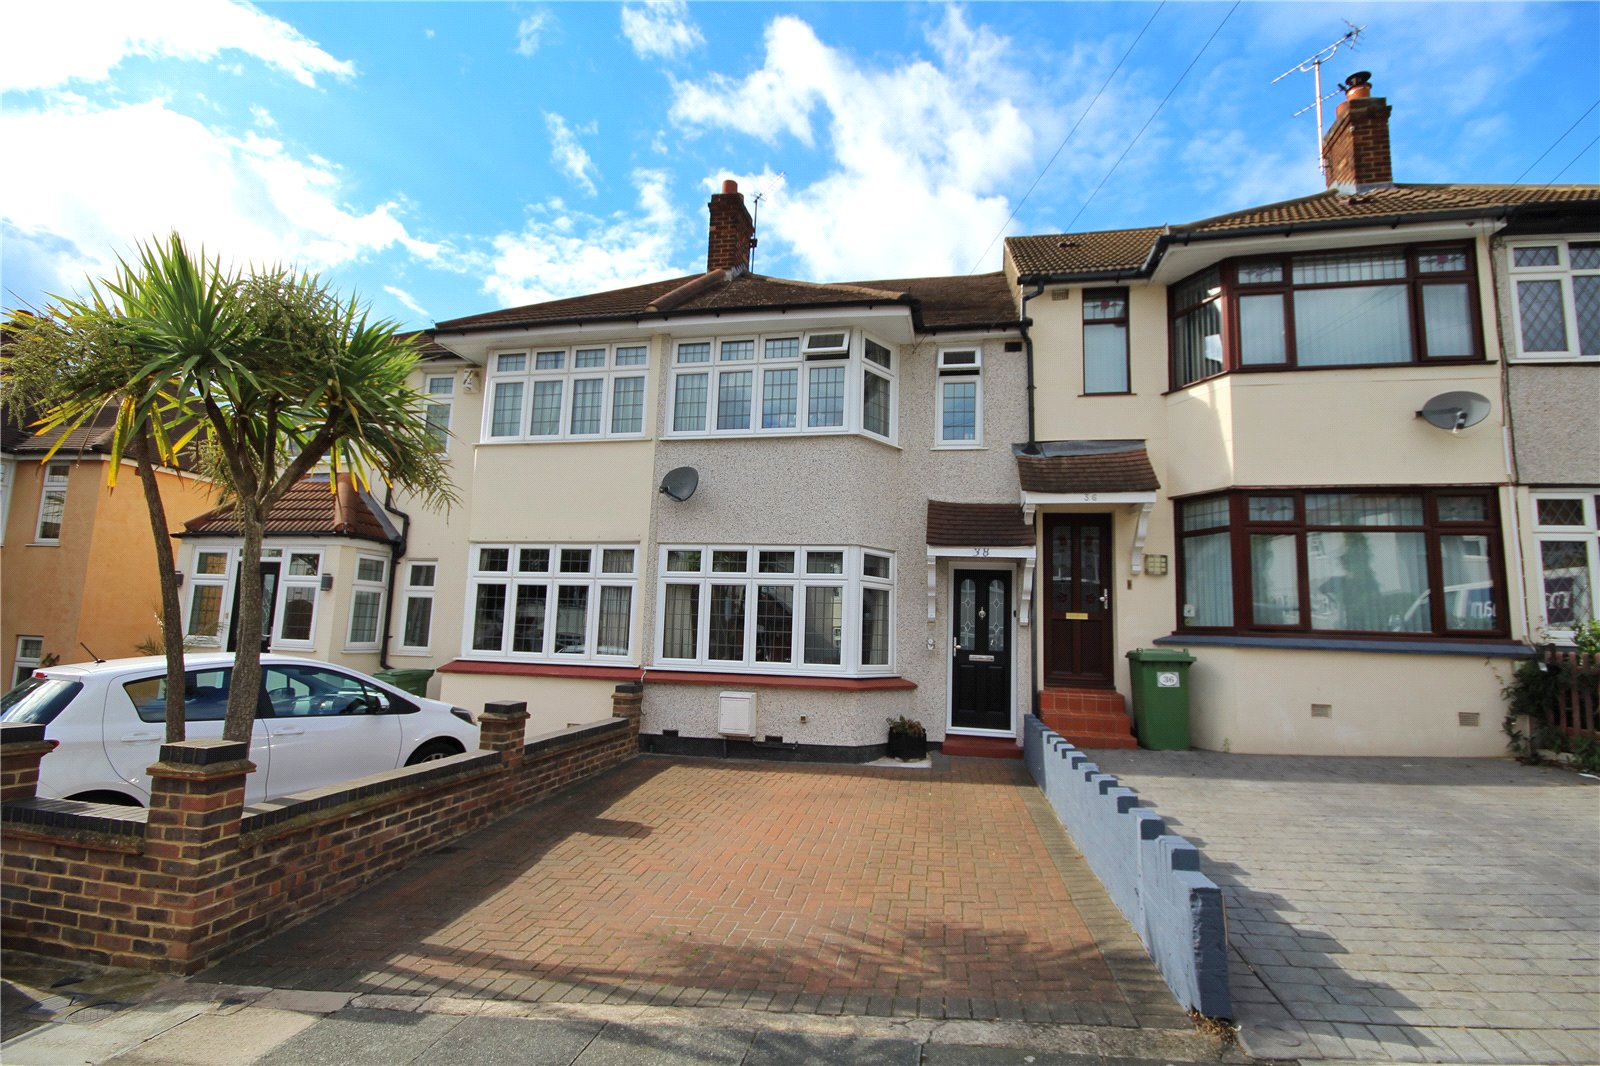 Somerset Avenue, South Welling, Kent, DA16